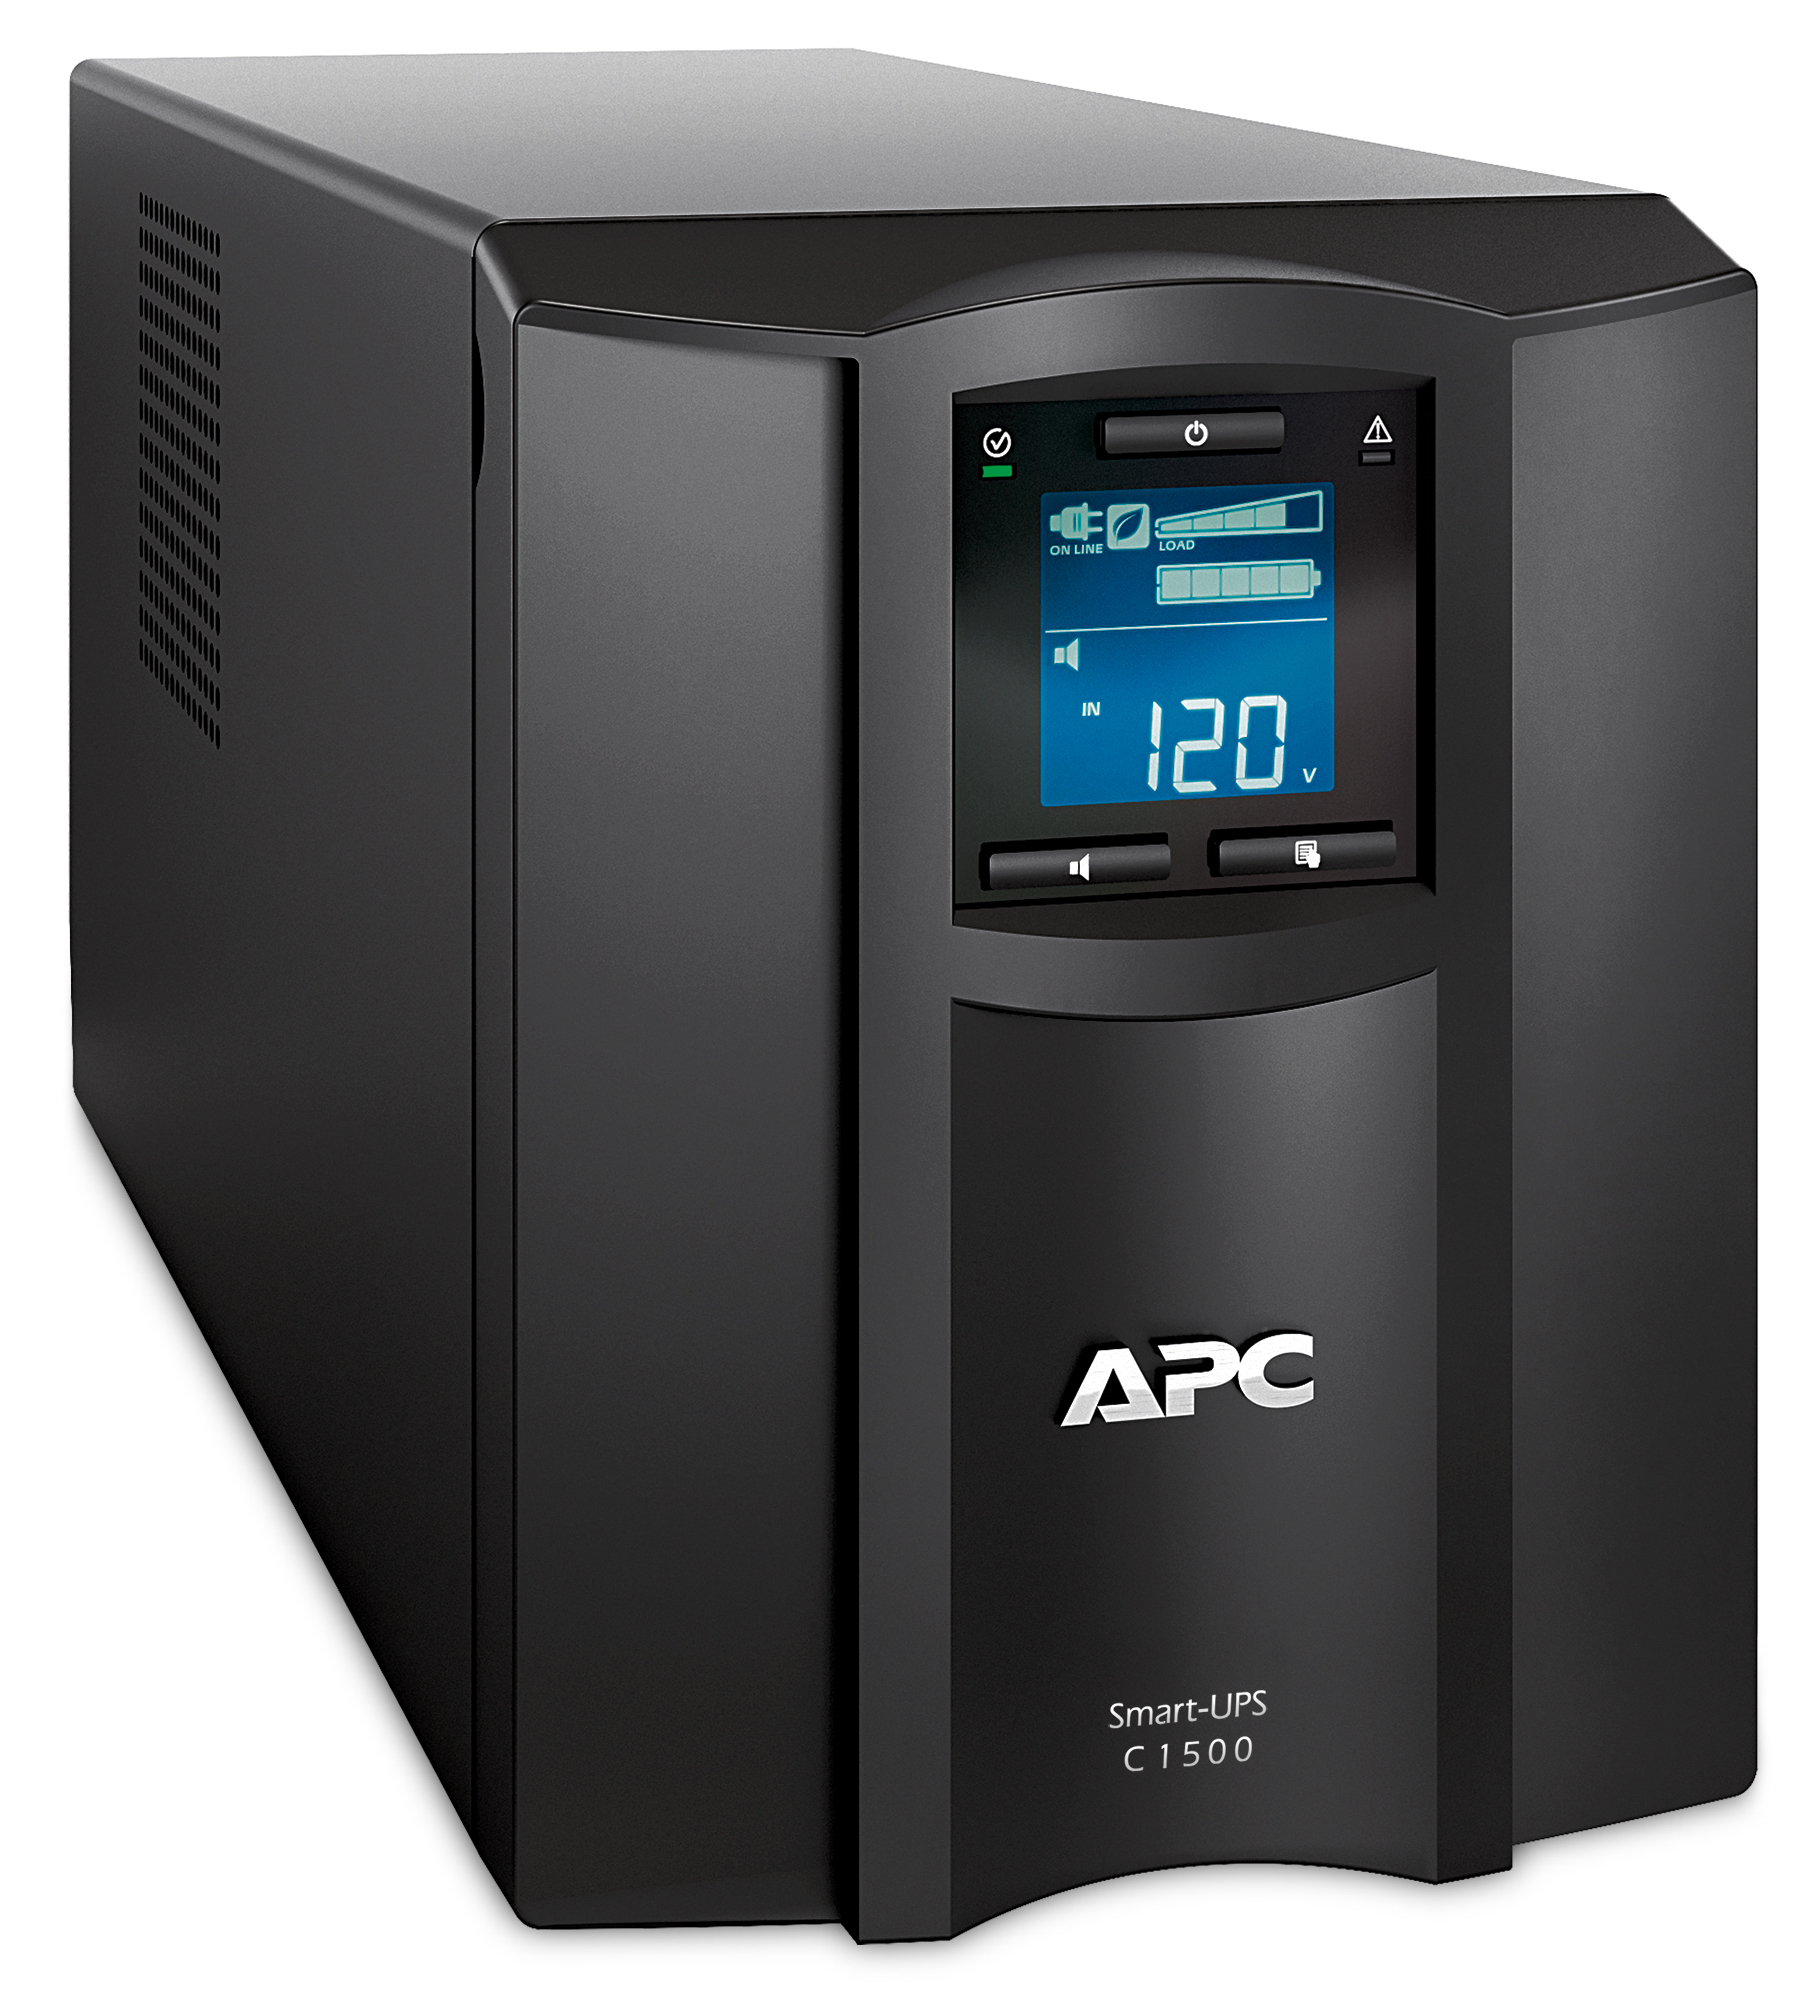 APC SMC1500IC uninterruptible power supply (UPS) 1500 VA 10 AC outlet(s) Line-Interactive